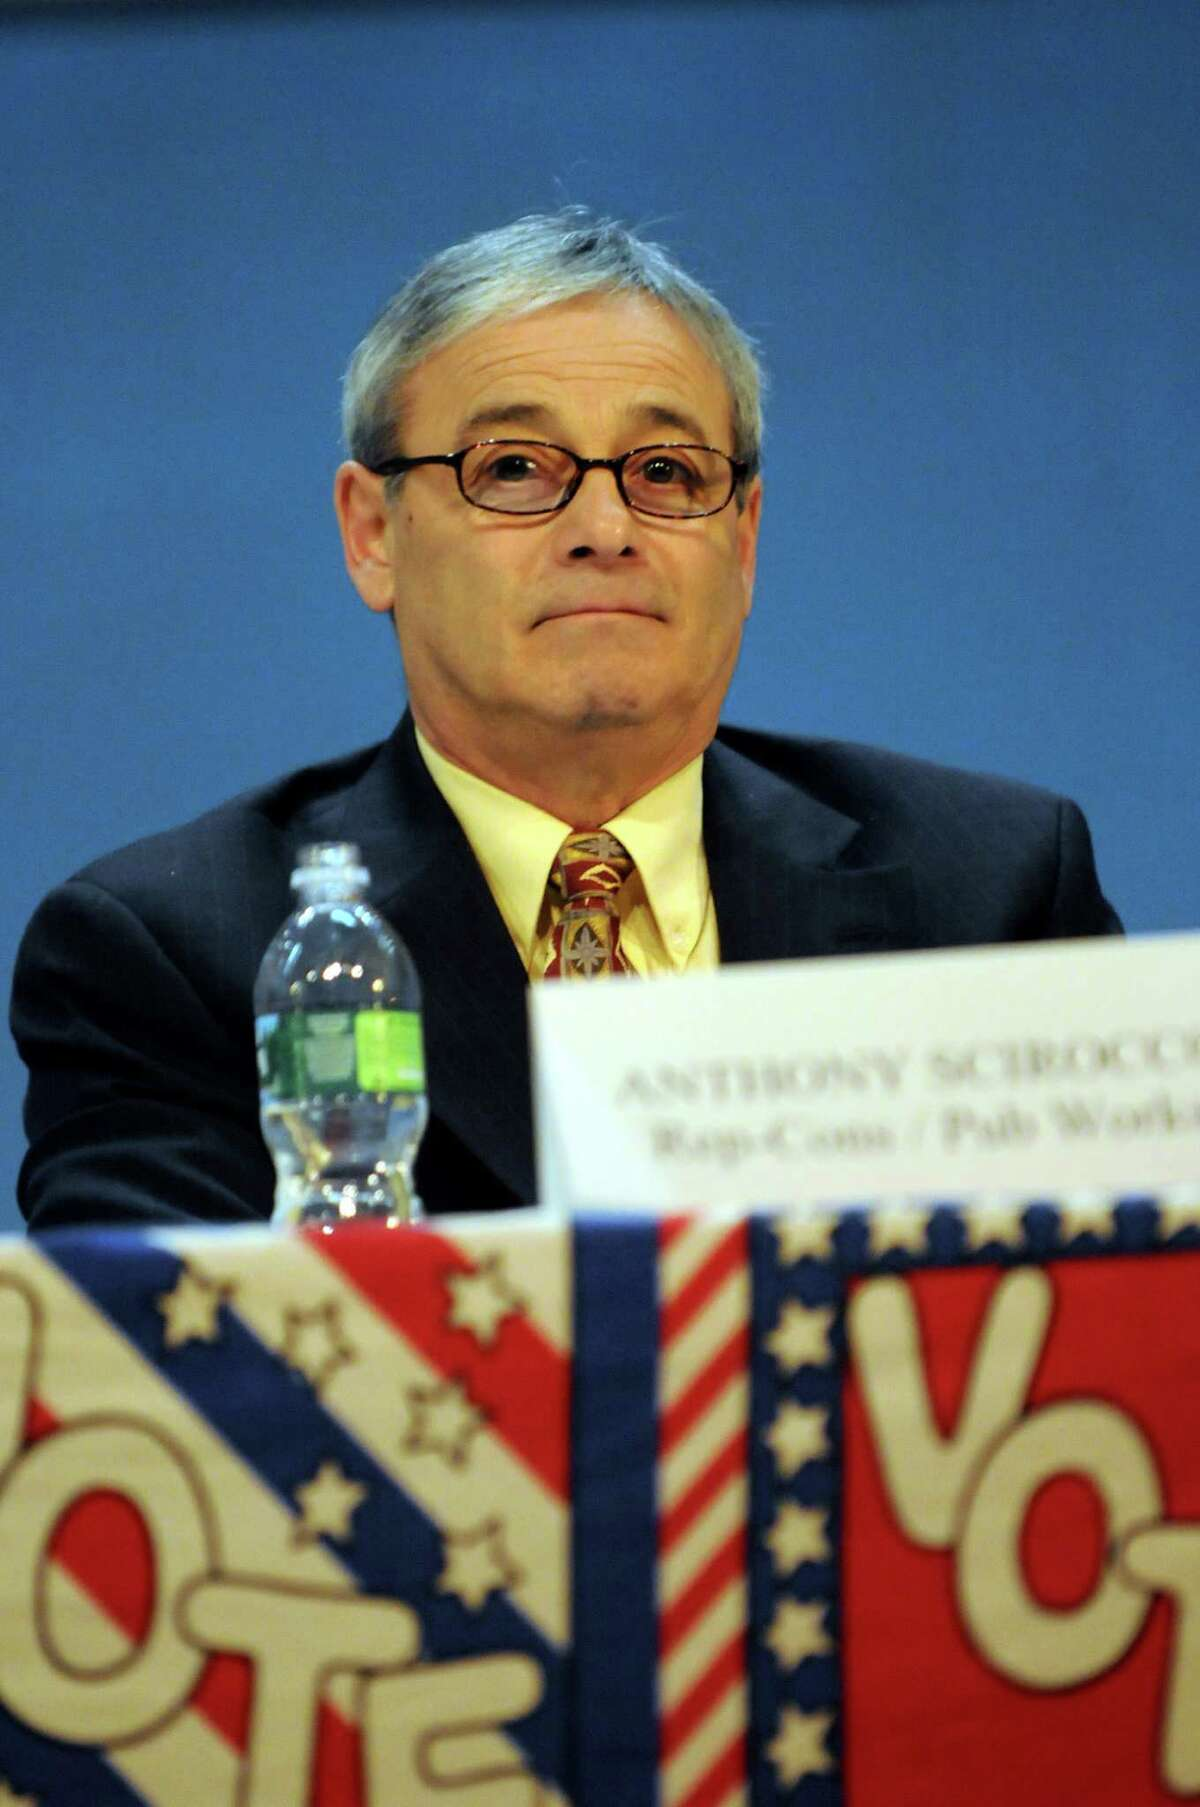 Incumbent Comissioner of Public Works Anthony J. Scirocco during a forum in 2009, at Saratoga Springs High in Saratoga Springs, N.Y. (Cindy Schultz / Times Union)